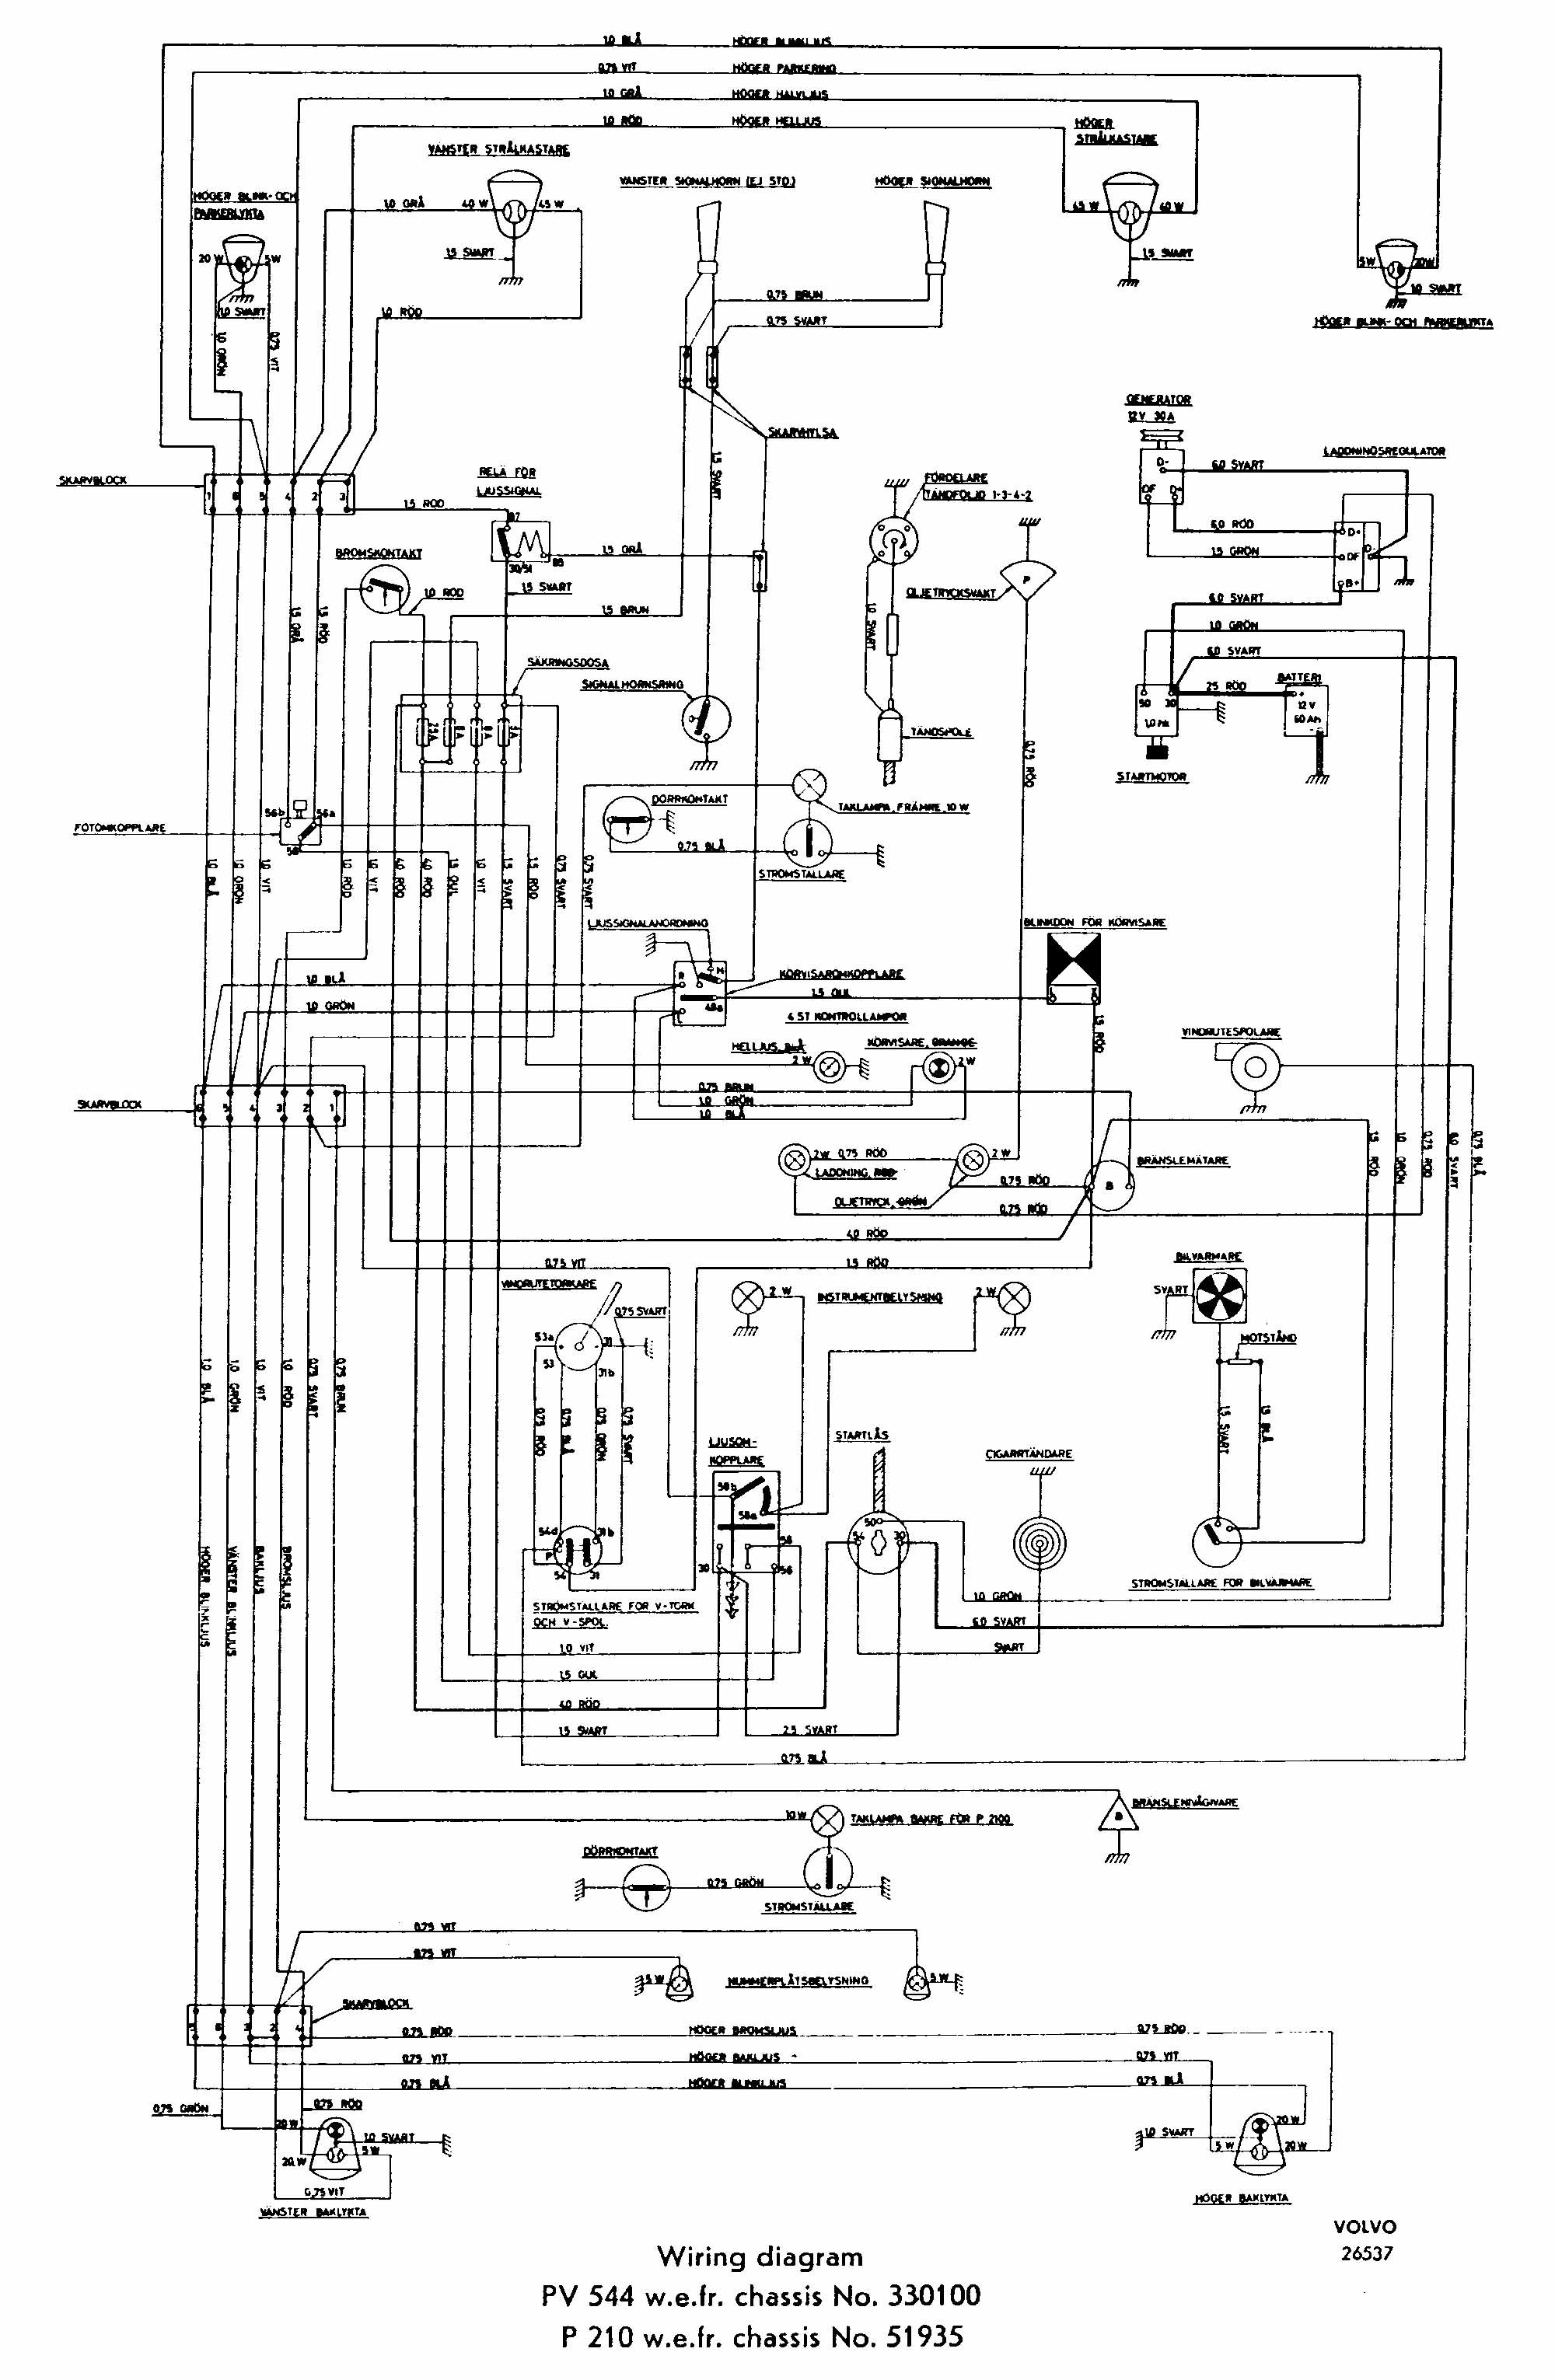 2002 Volvo S40 Wiring Diagram